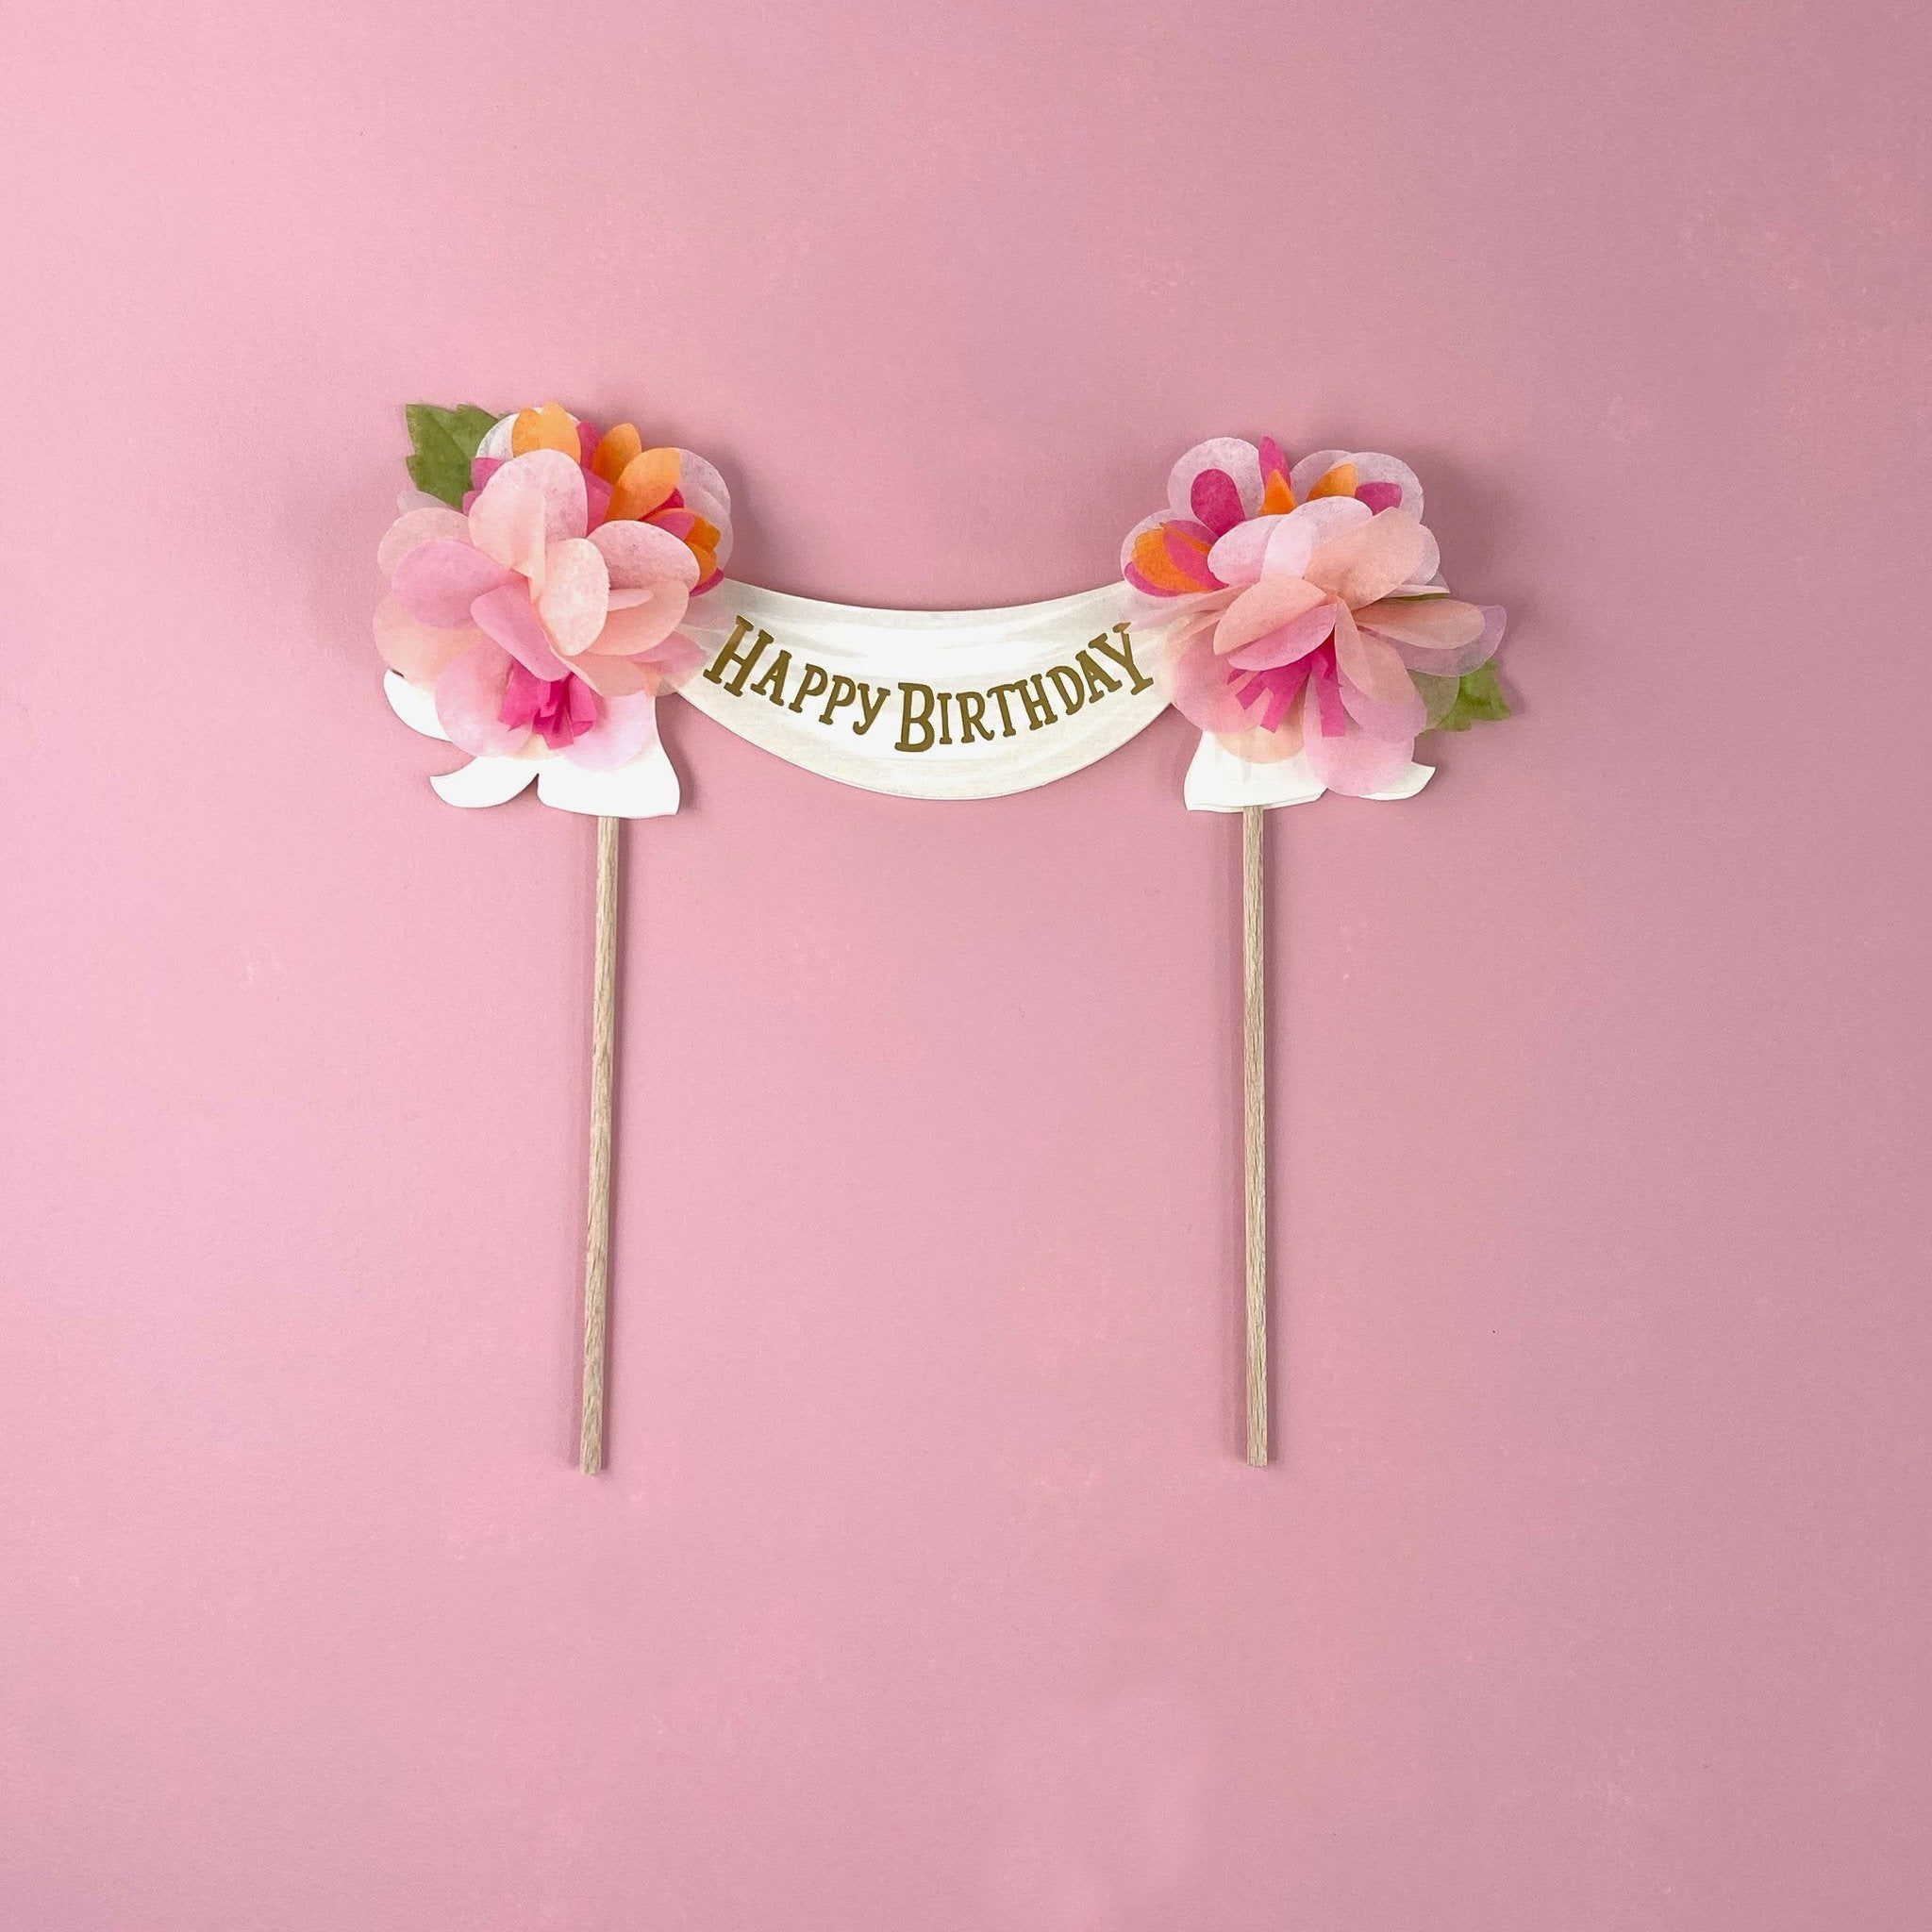 Happy Birthday Cake Topper Pinks by The First Snow - The First Snow